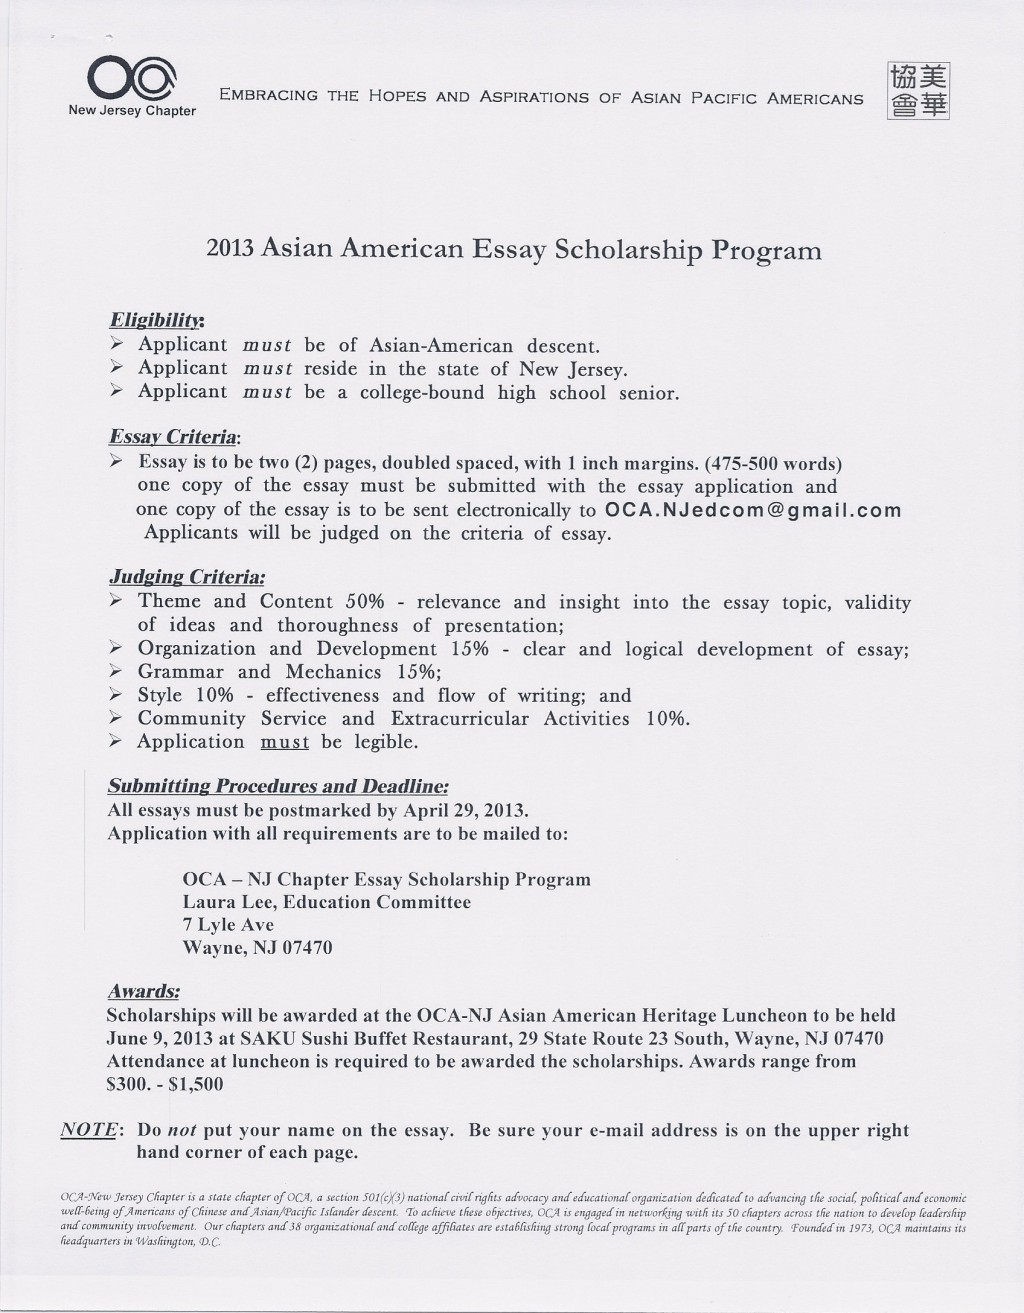 019 Scholarships With Essays Essay Example Singular Without Writing For High School Juniors Class Of 2020 No 2019 Large